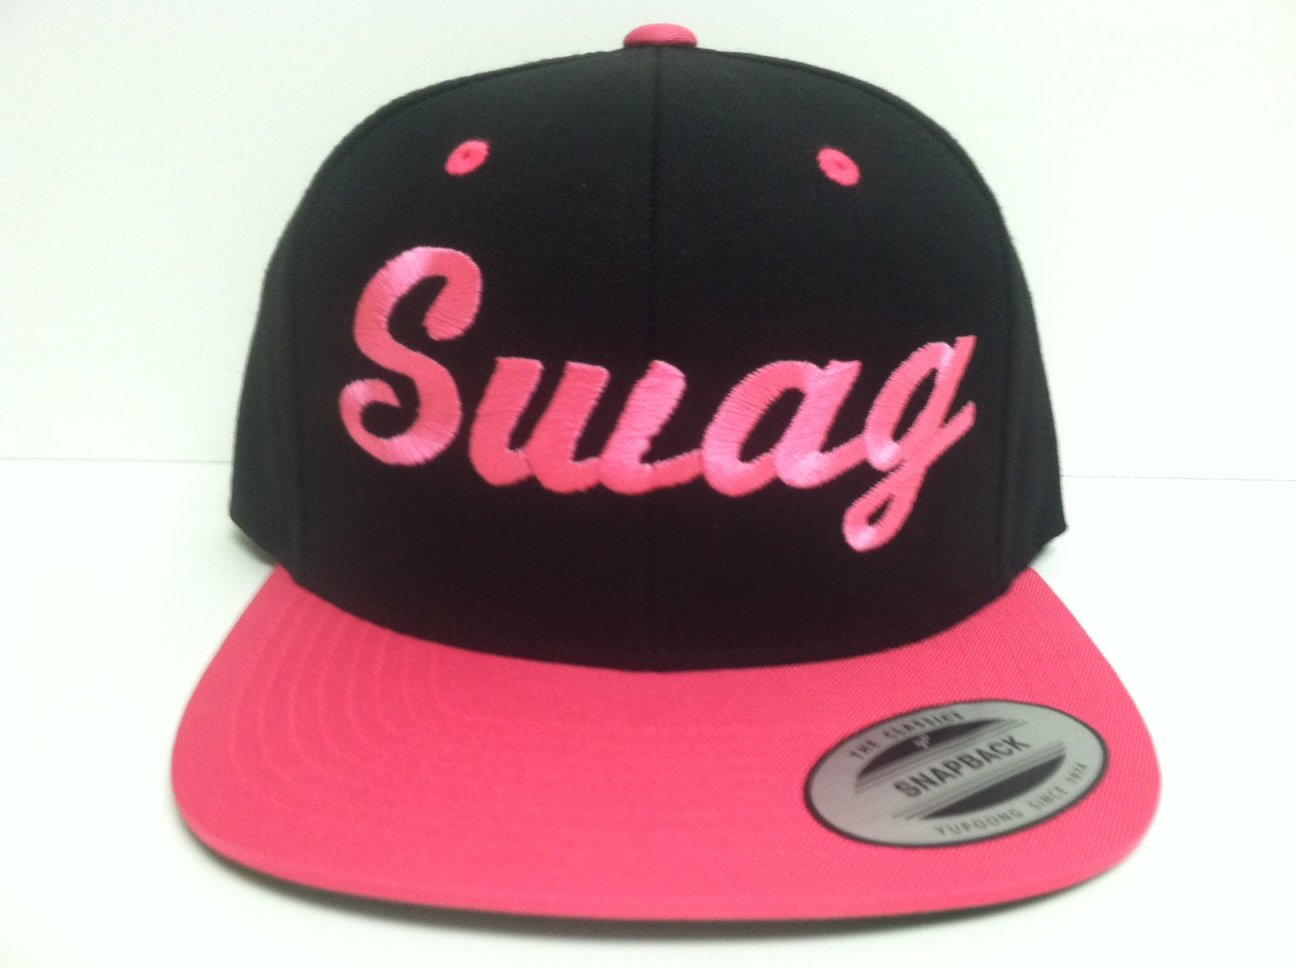 Find the best selection of cheap swag hats in bulk here at exeezipcoolgetsiu9tq.cf Including team hat brands and red hat cute baby at wholesale prices from swag hats manufacturers. Source discount and high quality products in hundreds of categories wholesale direct from China.